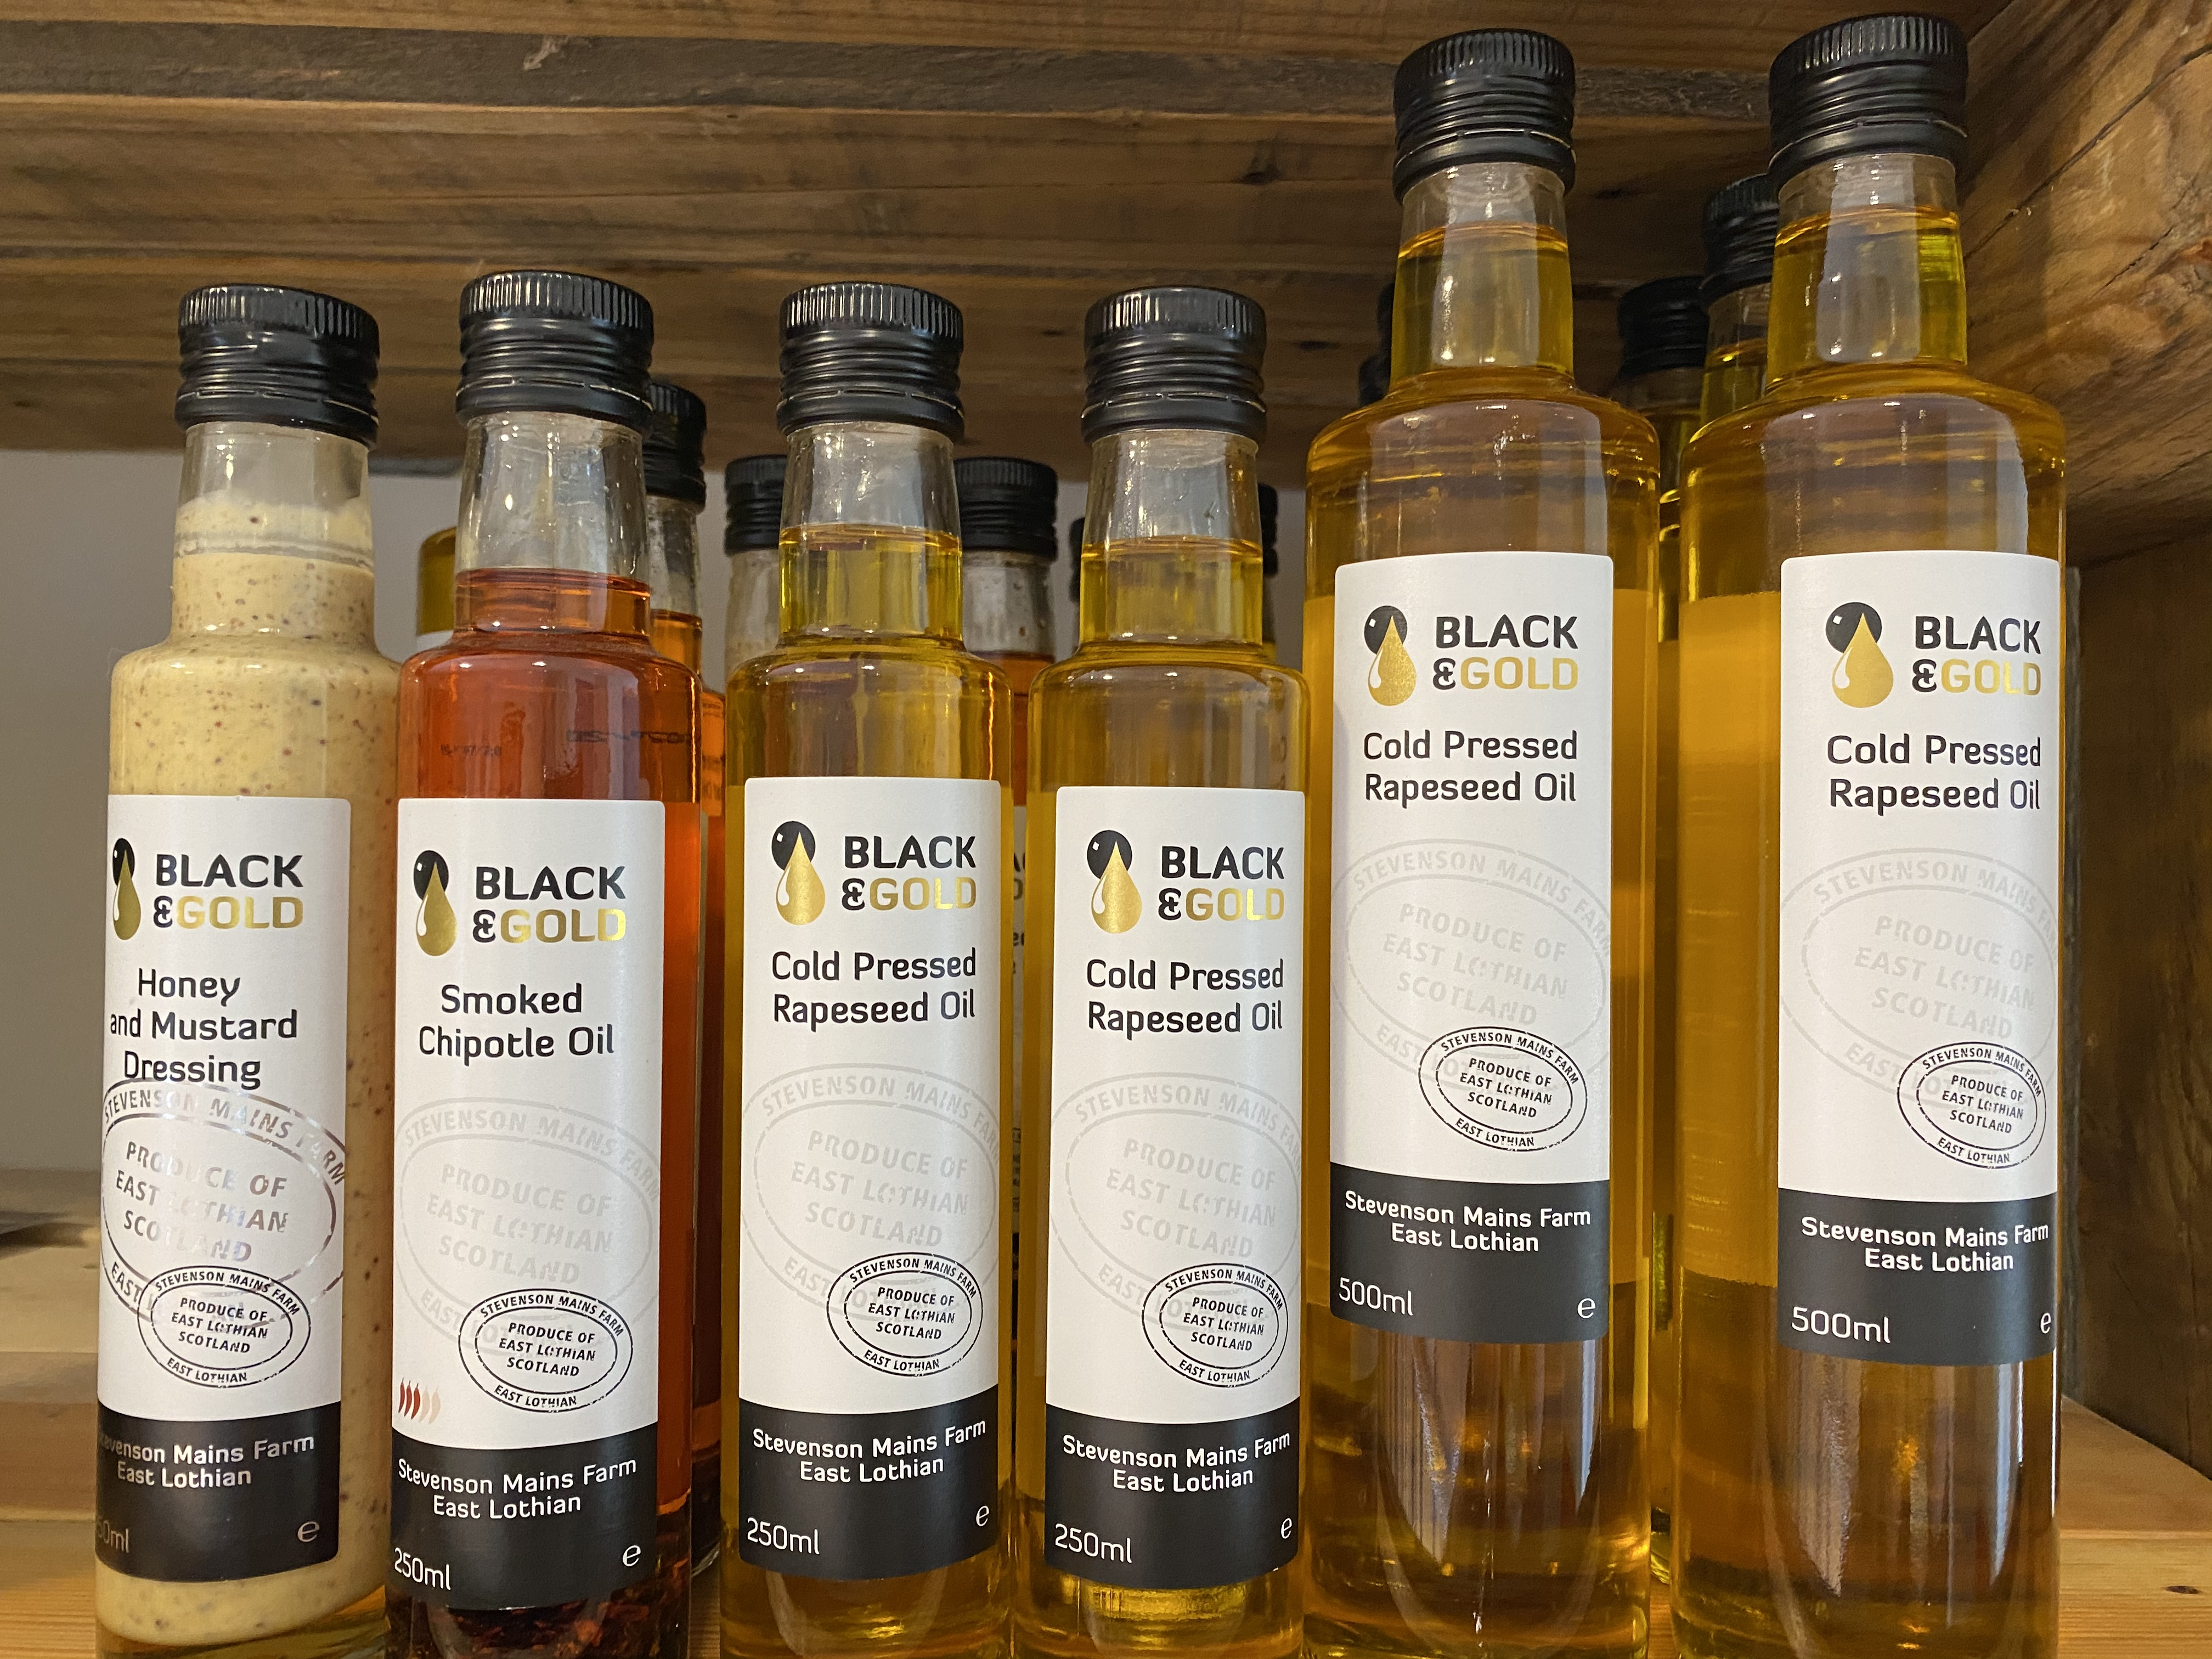 Black and Gold Cold Pressed Rapeseed Oil